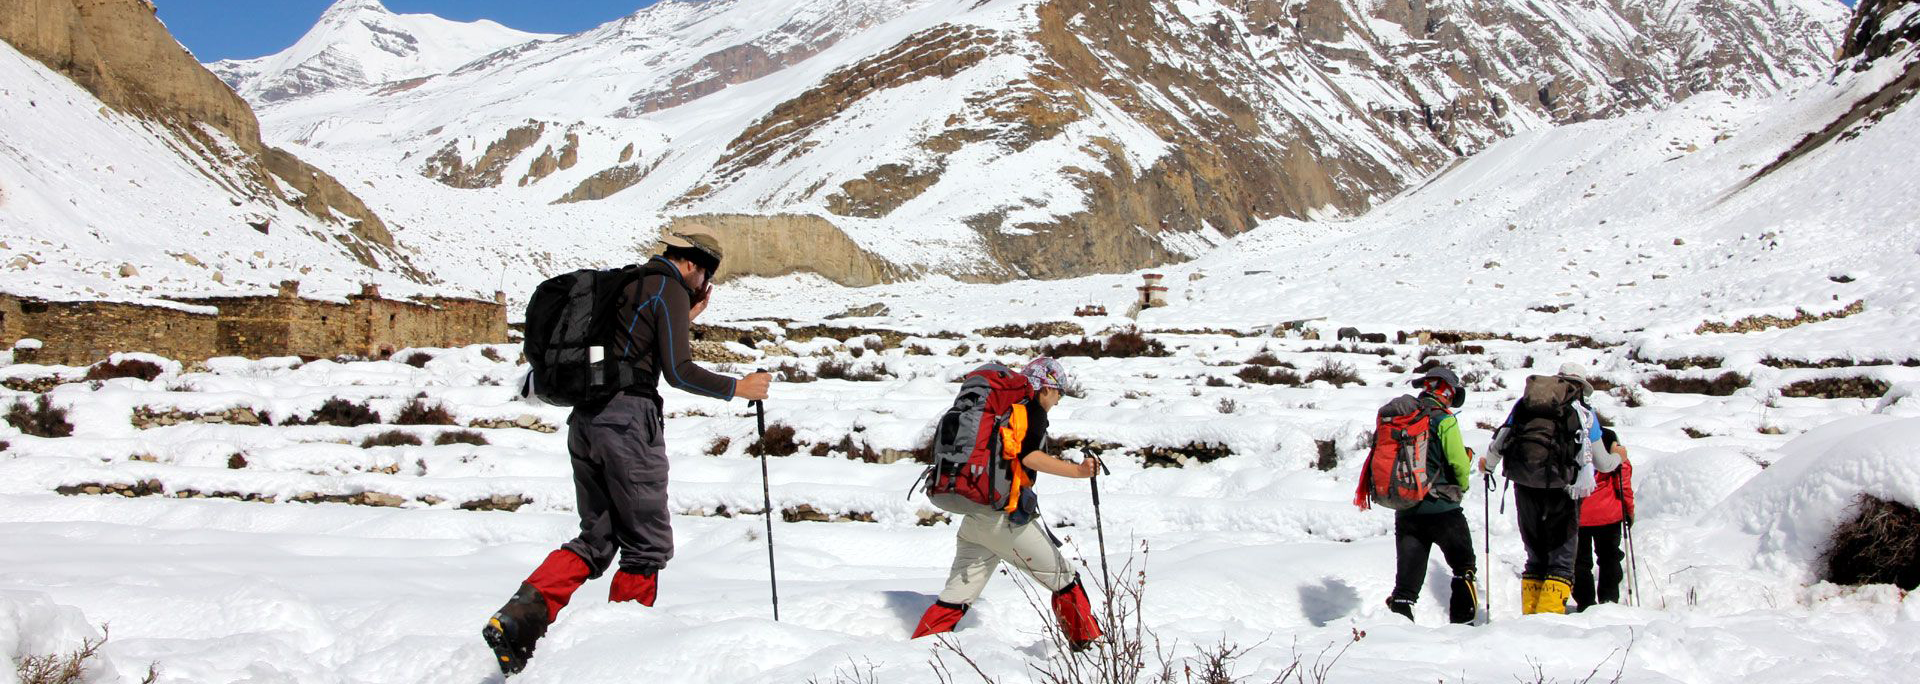 Discover adventures in the Himalayas!